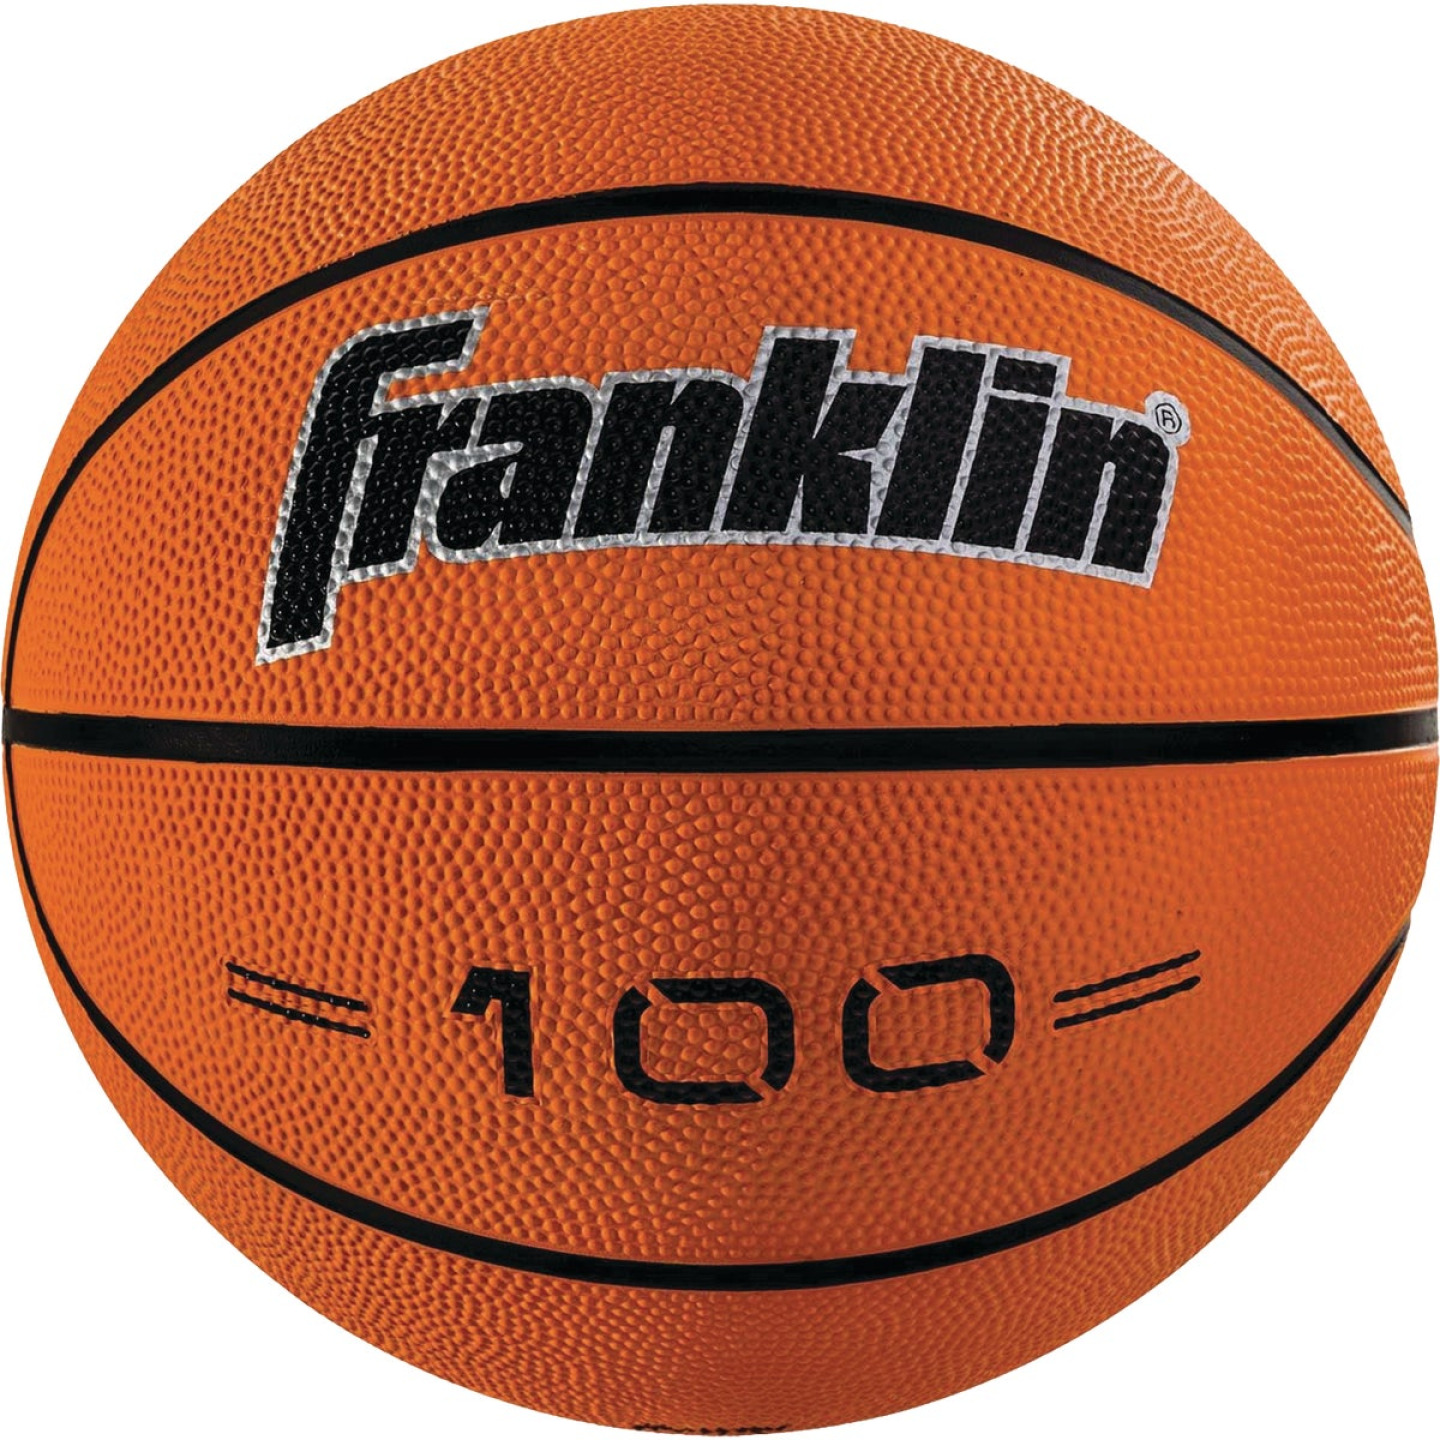 Spalding Outdoor Lay Up Basketball, Official Size Image 1